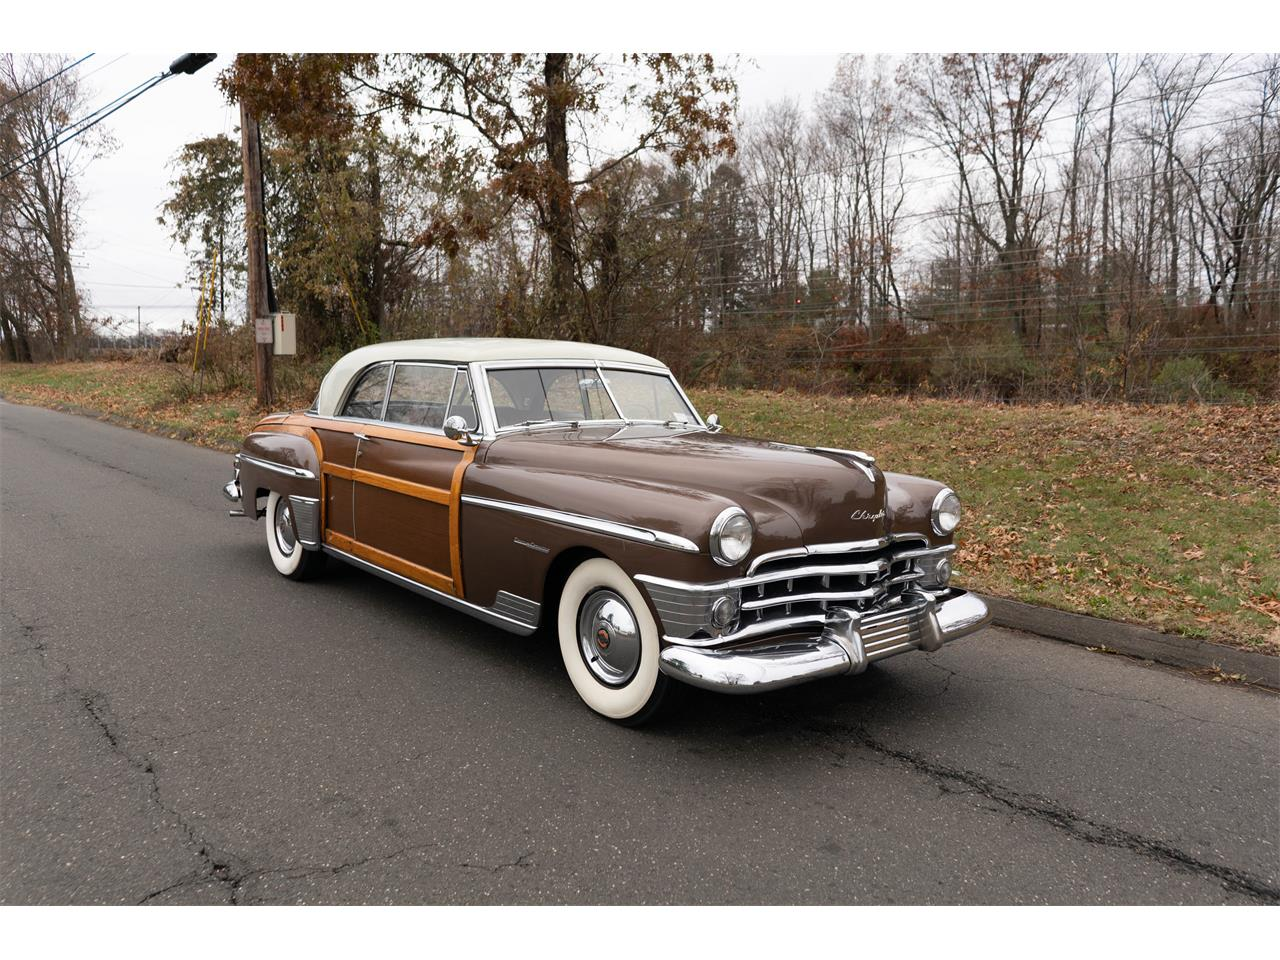 1950 Chrysler Town & Country (CC-1301895) for sale in Orange, Connecticut